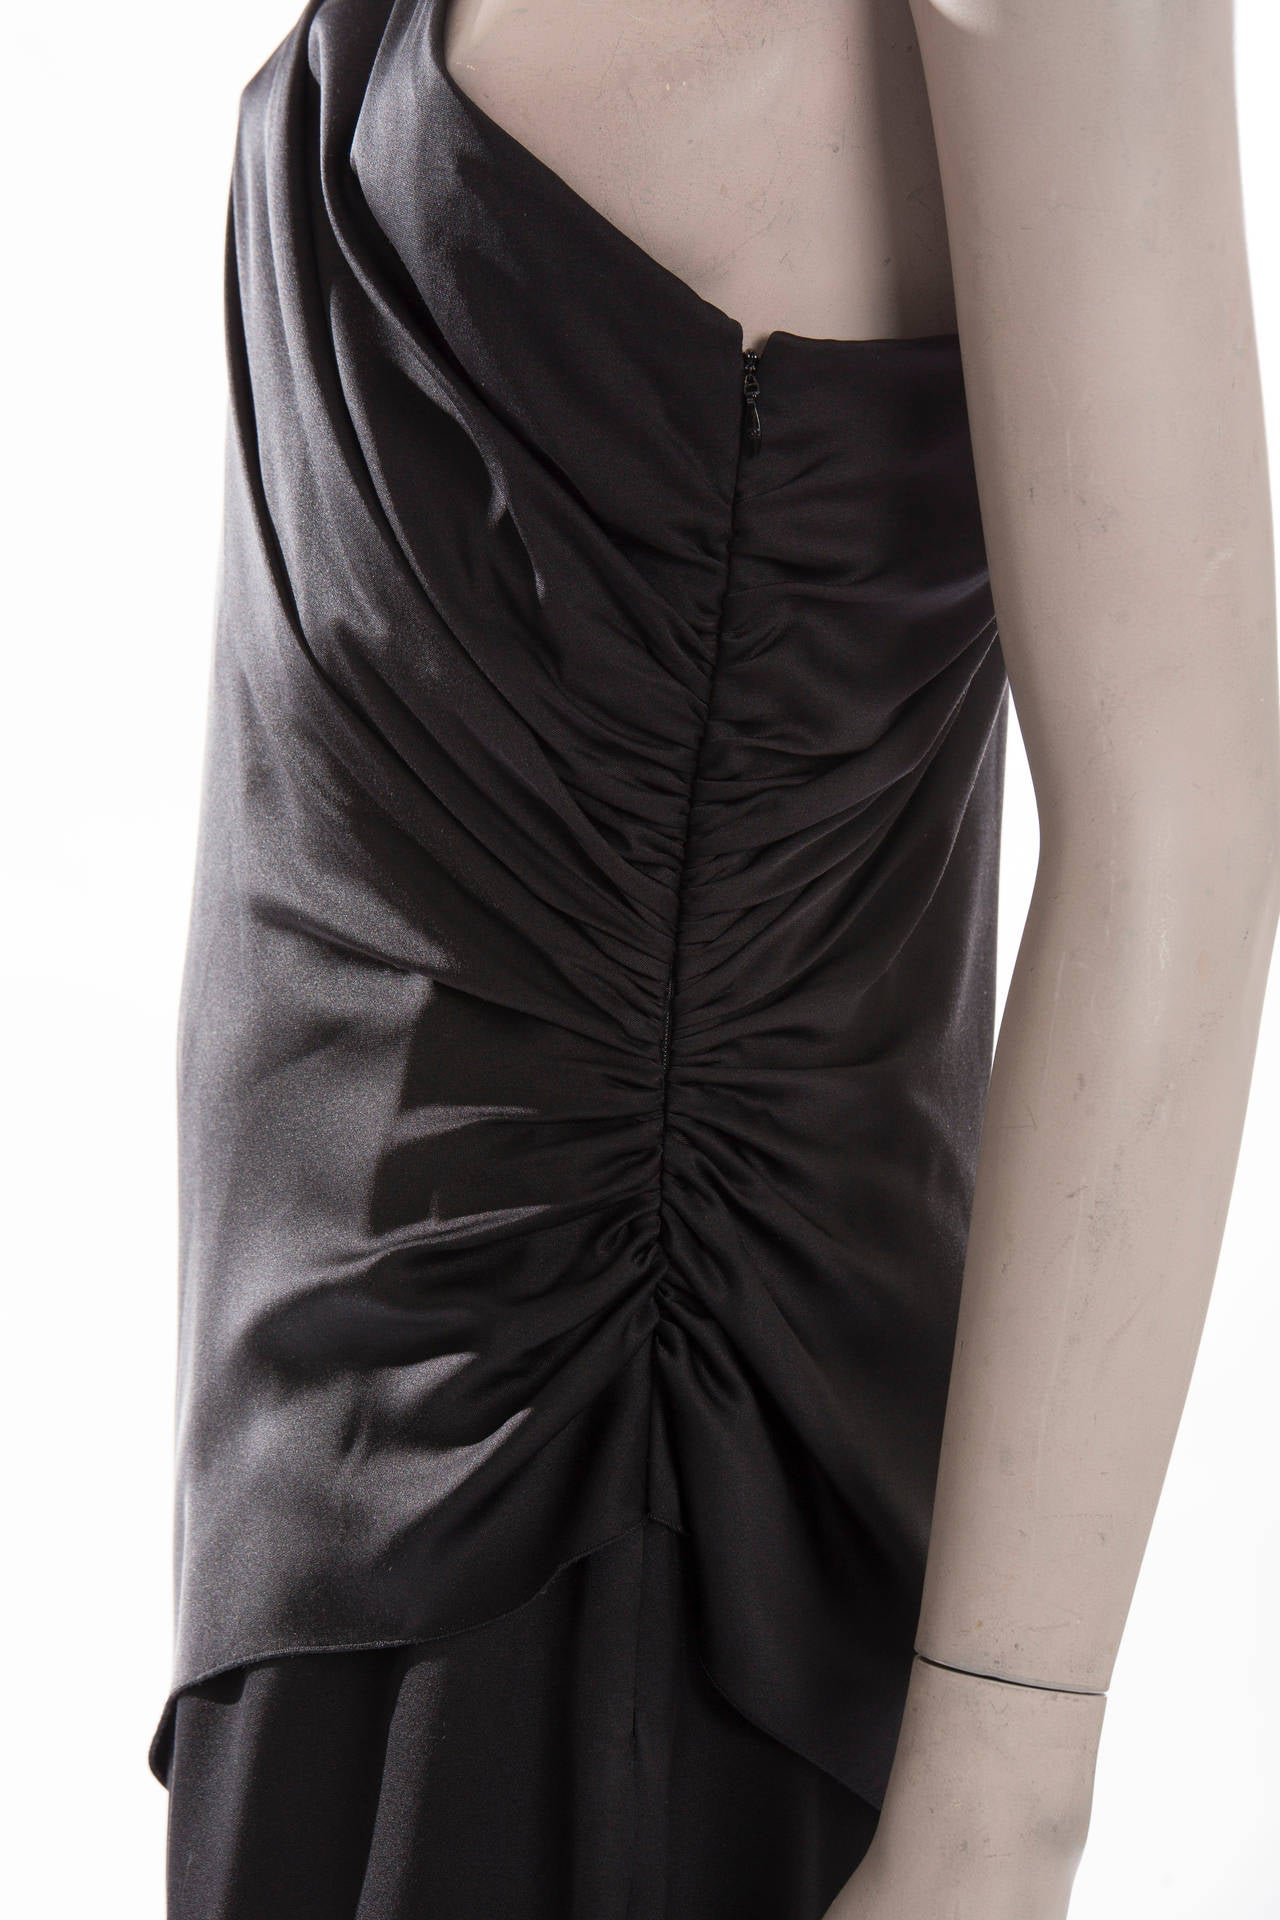 Women's Chanel Black Silk One Shoulder Evening Dress, Cruise 2009  For Sale